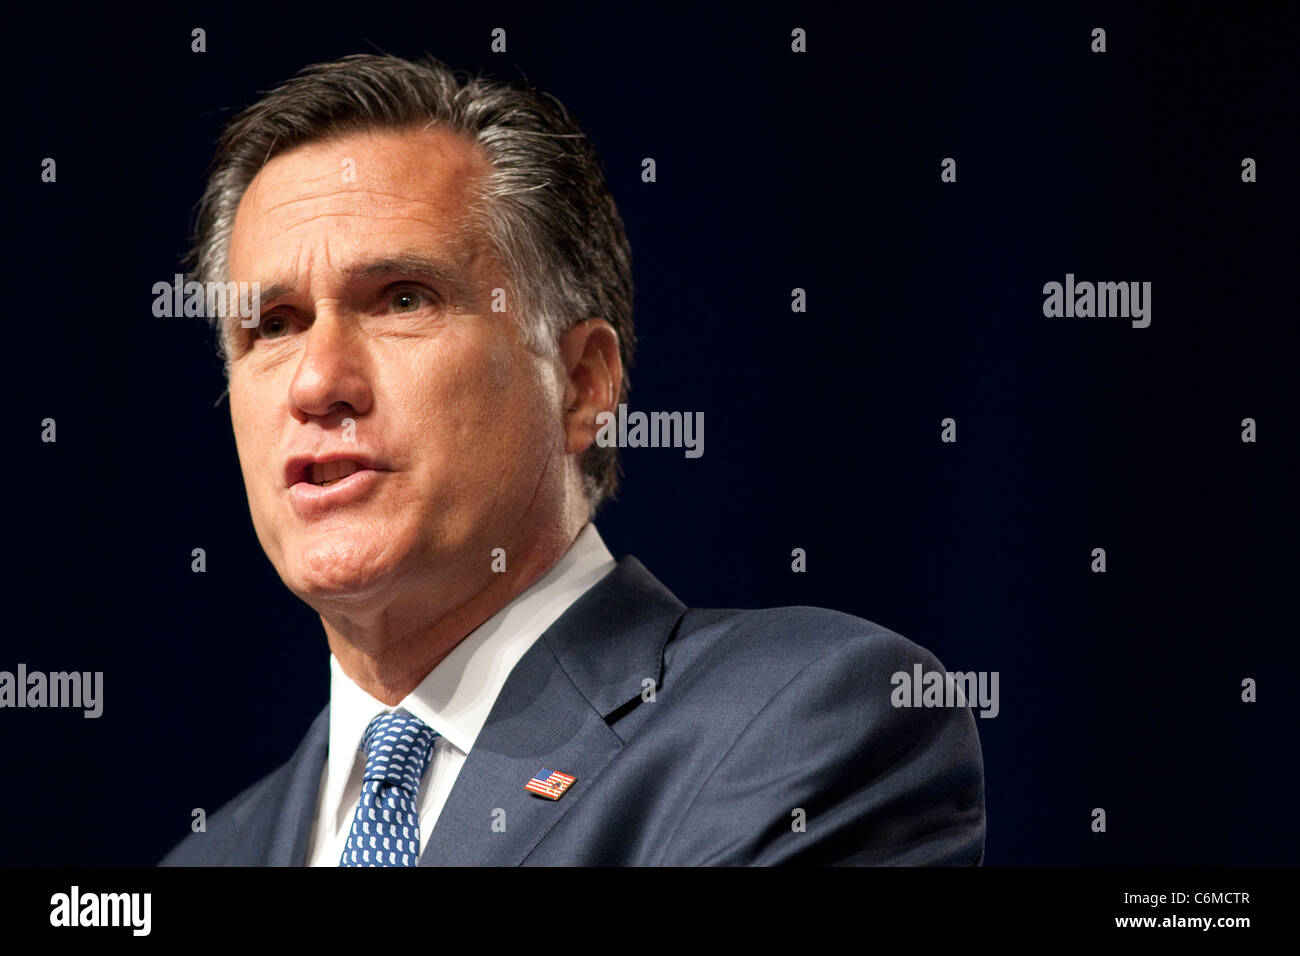 Republican Presidential hopeful Mitt Romney speaking at the Veteran's of Foreign Wars conference in San Antonio, - Stock Image